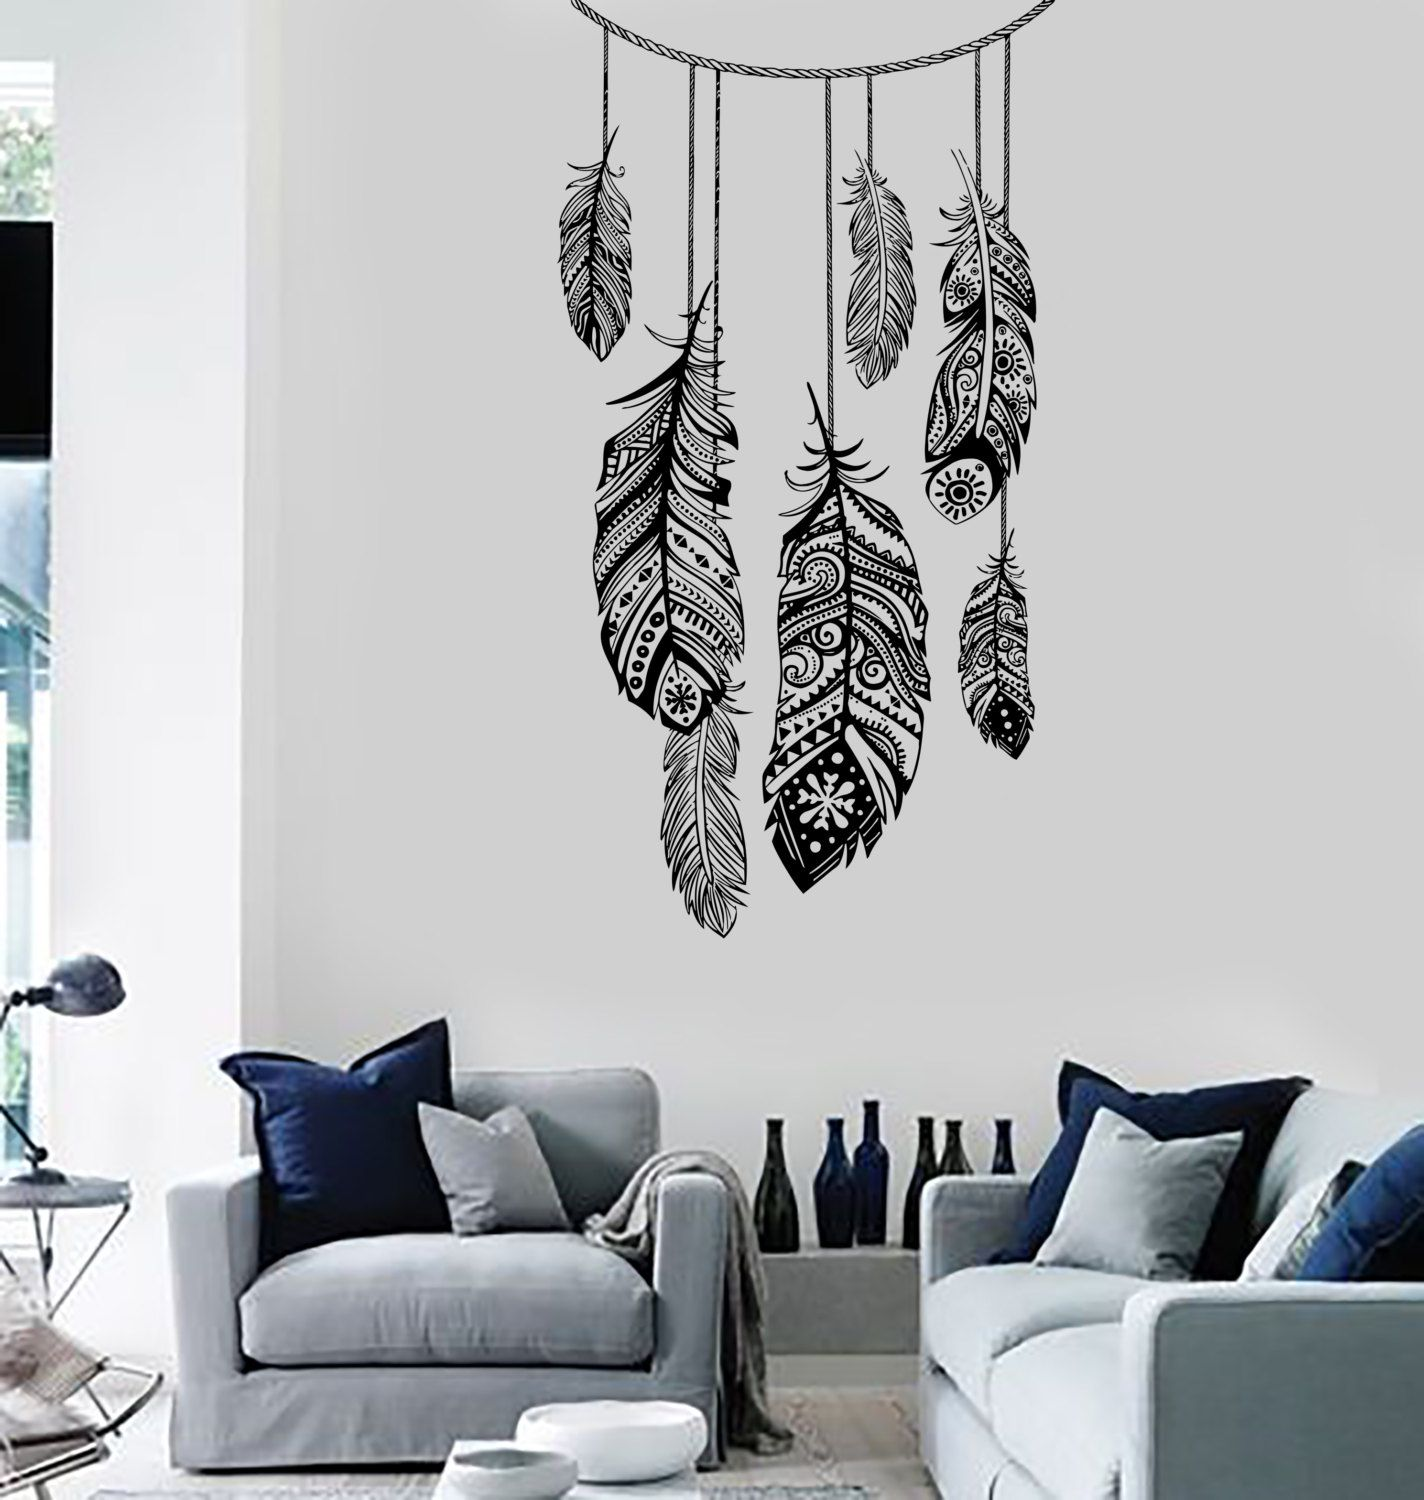 best vinilos images on pinterest home wall stickers and